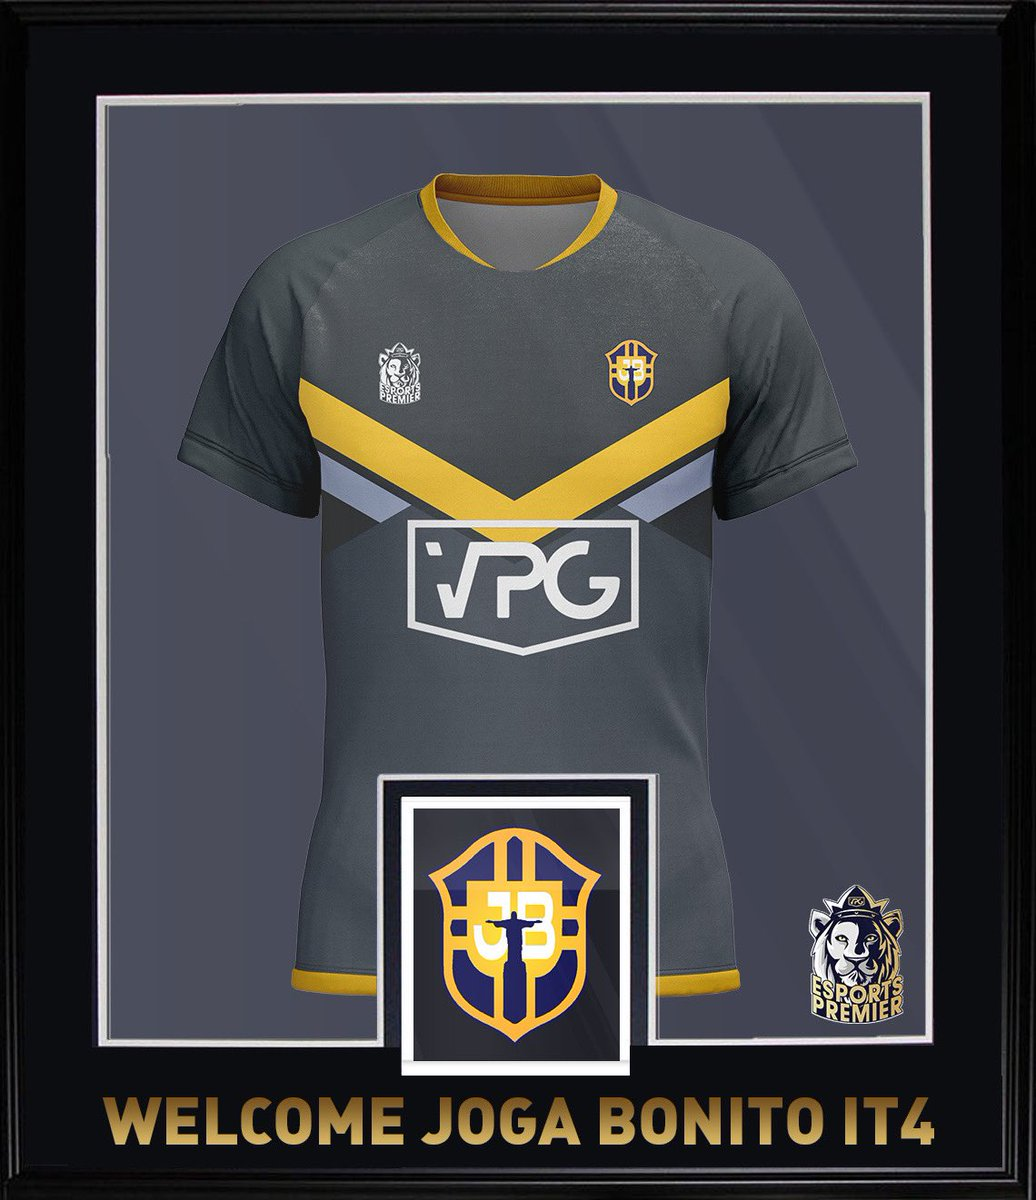 🤩 Welcome @JogaBonitoIT4 into the @VPGPremier !   🌍 Nationality: 🇮🇹   🏆 Mid table last season, now with fresh faces ready to stand their ground and be title contenders!   #IT4 #FIFA21 #ProClubs #VPG https://t.co/6qtOsjghfx